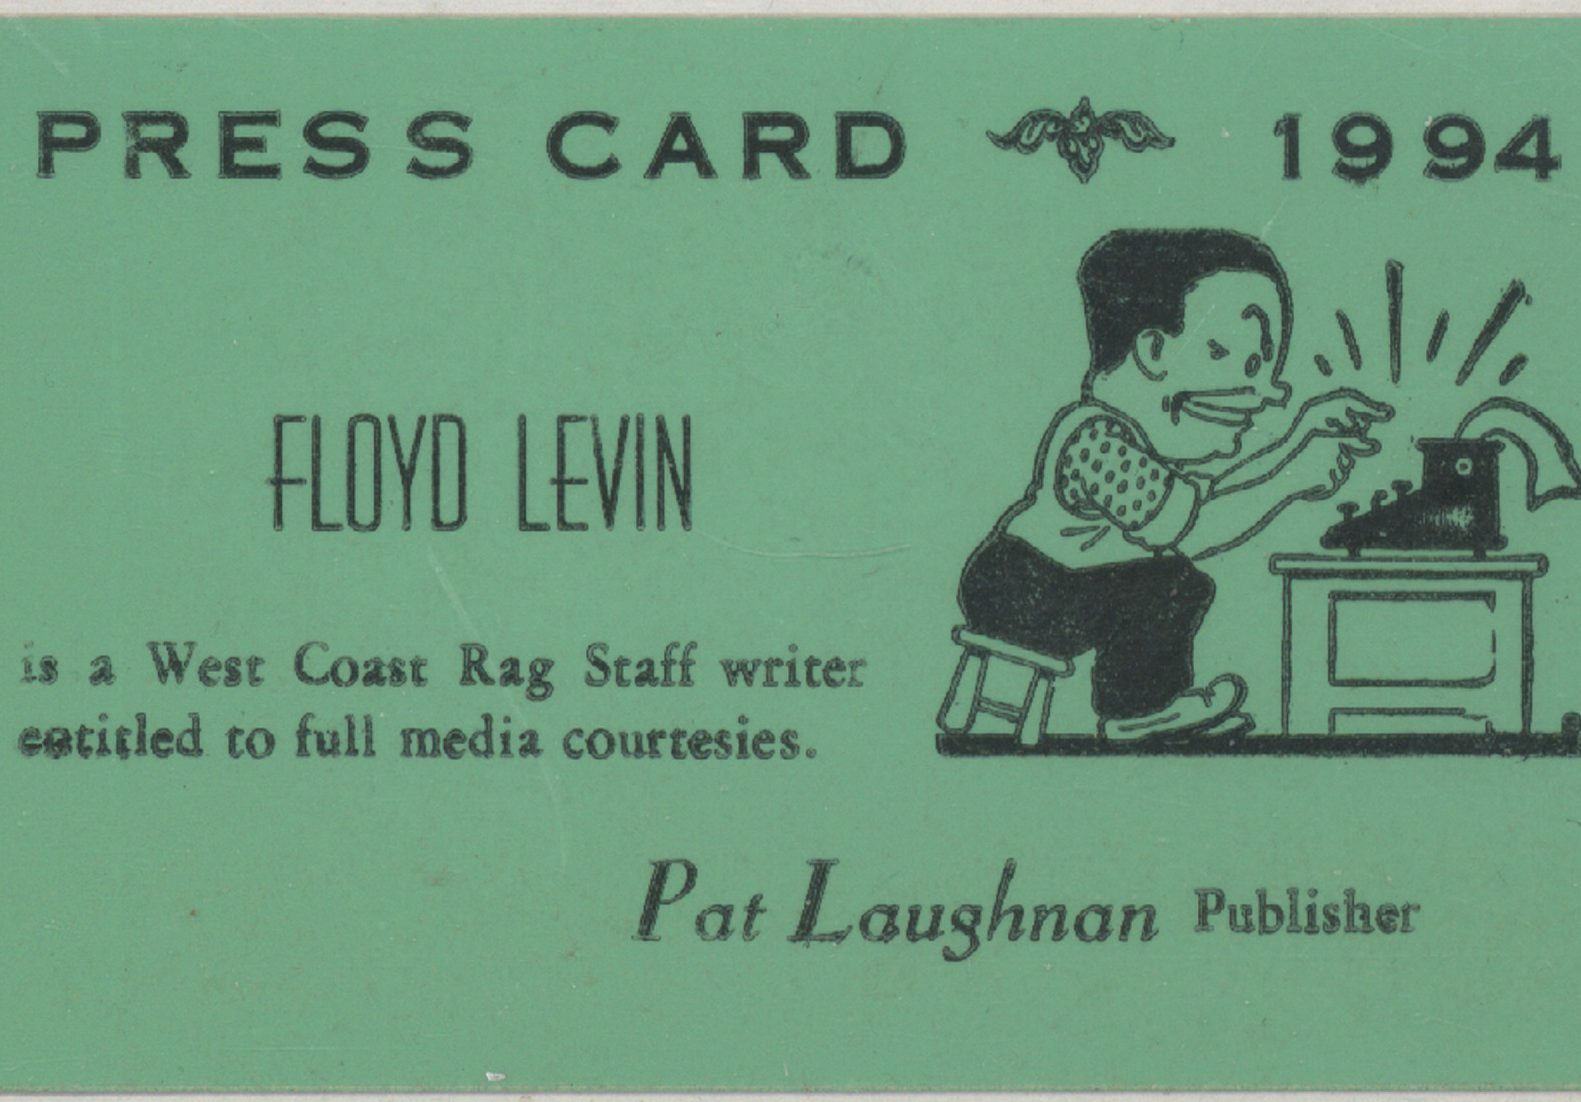 """A green card reading """"Press card -- 1994. Floyd Levin is a West Coast Rag Staff writer entitled to full media courtesies. Pat Laughnan, Publisher."""""""